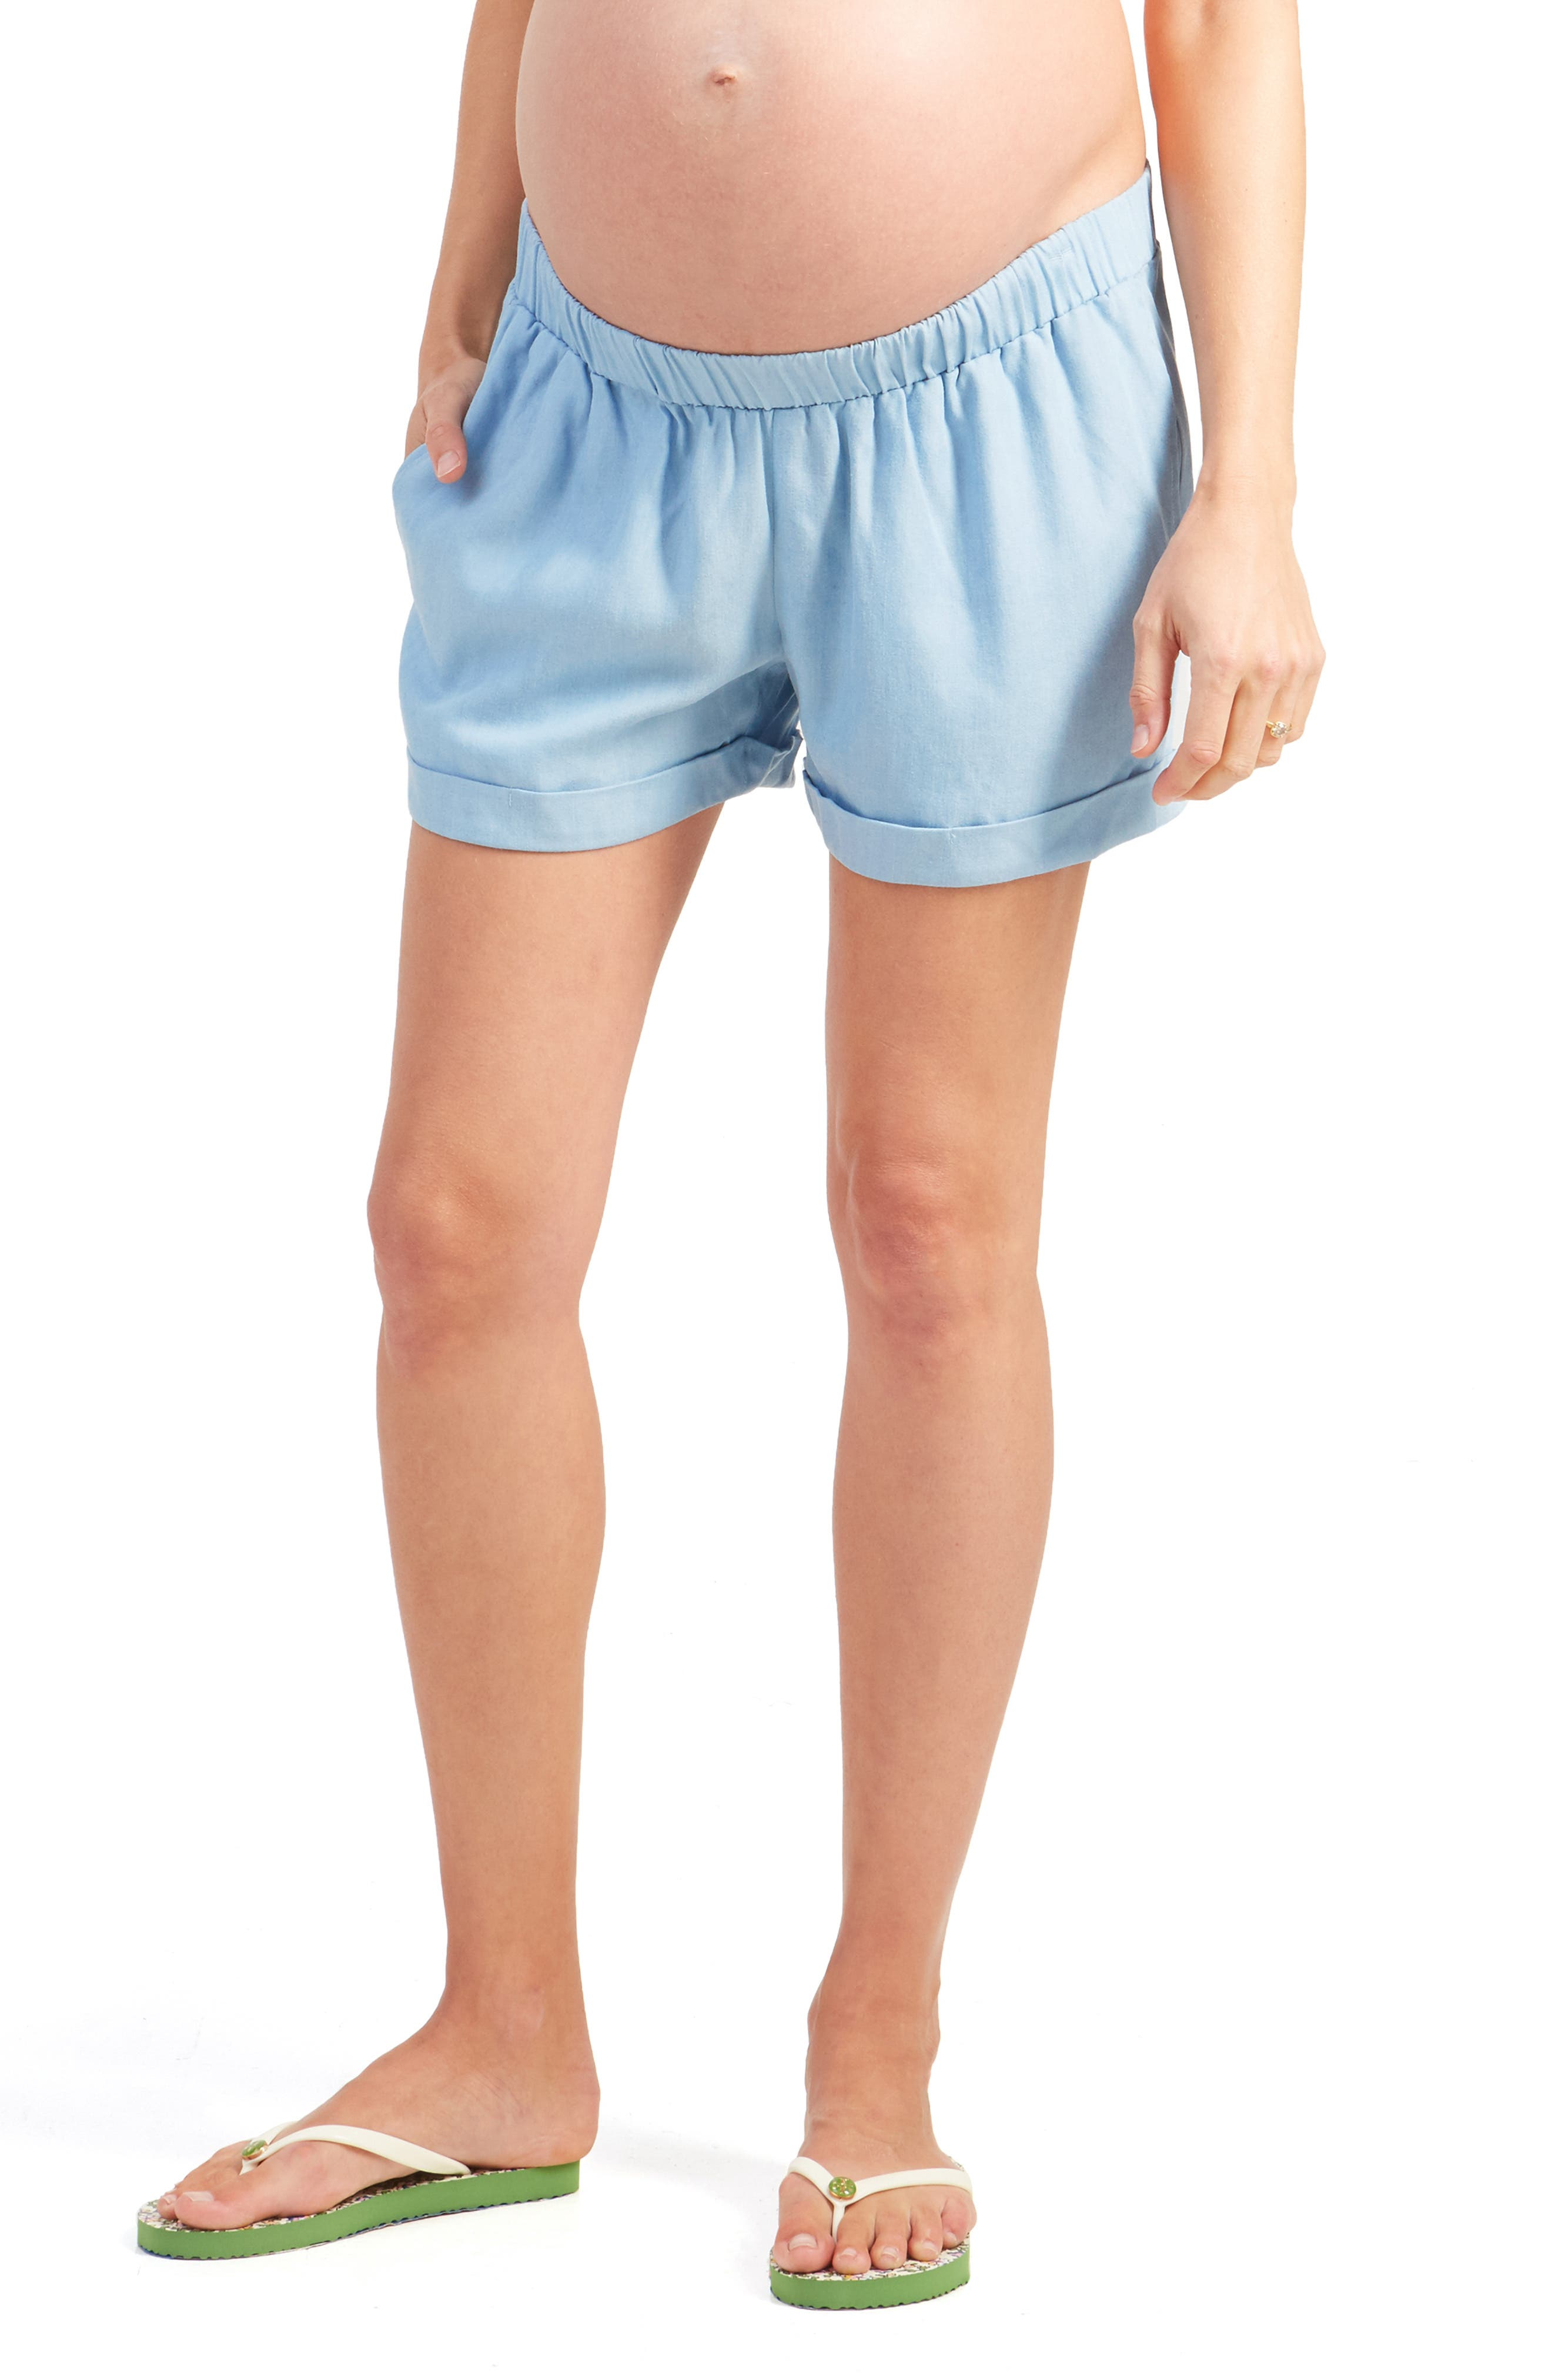 Ingrid & IsabelR Women's Ingrid & Isabel Under Belly Elastic Waist Shorts,  X-Small - Blue